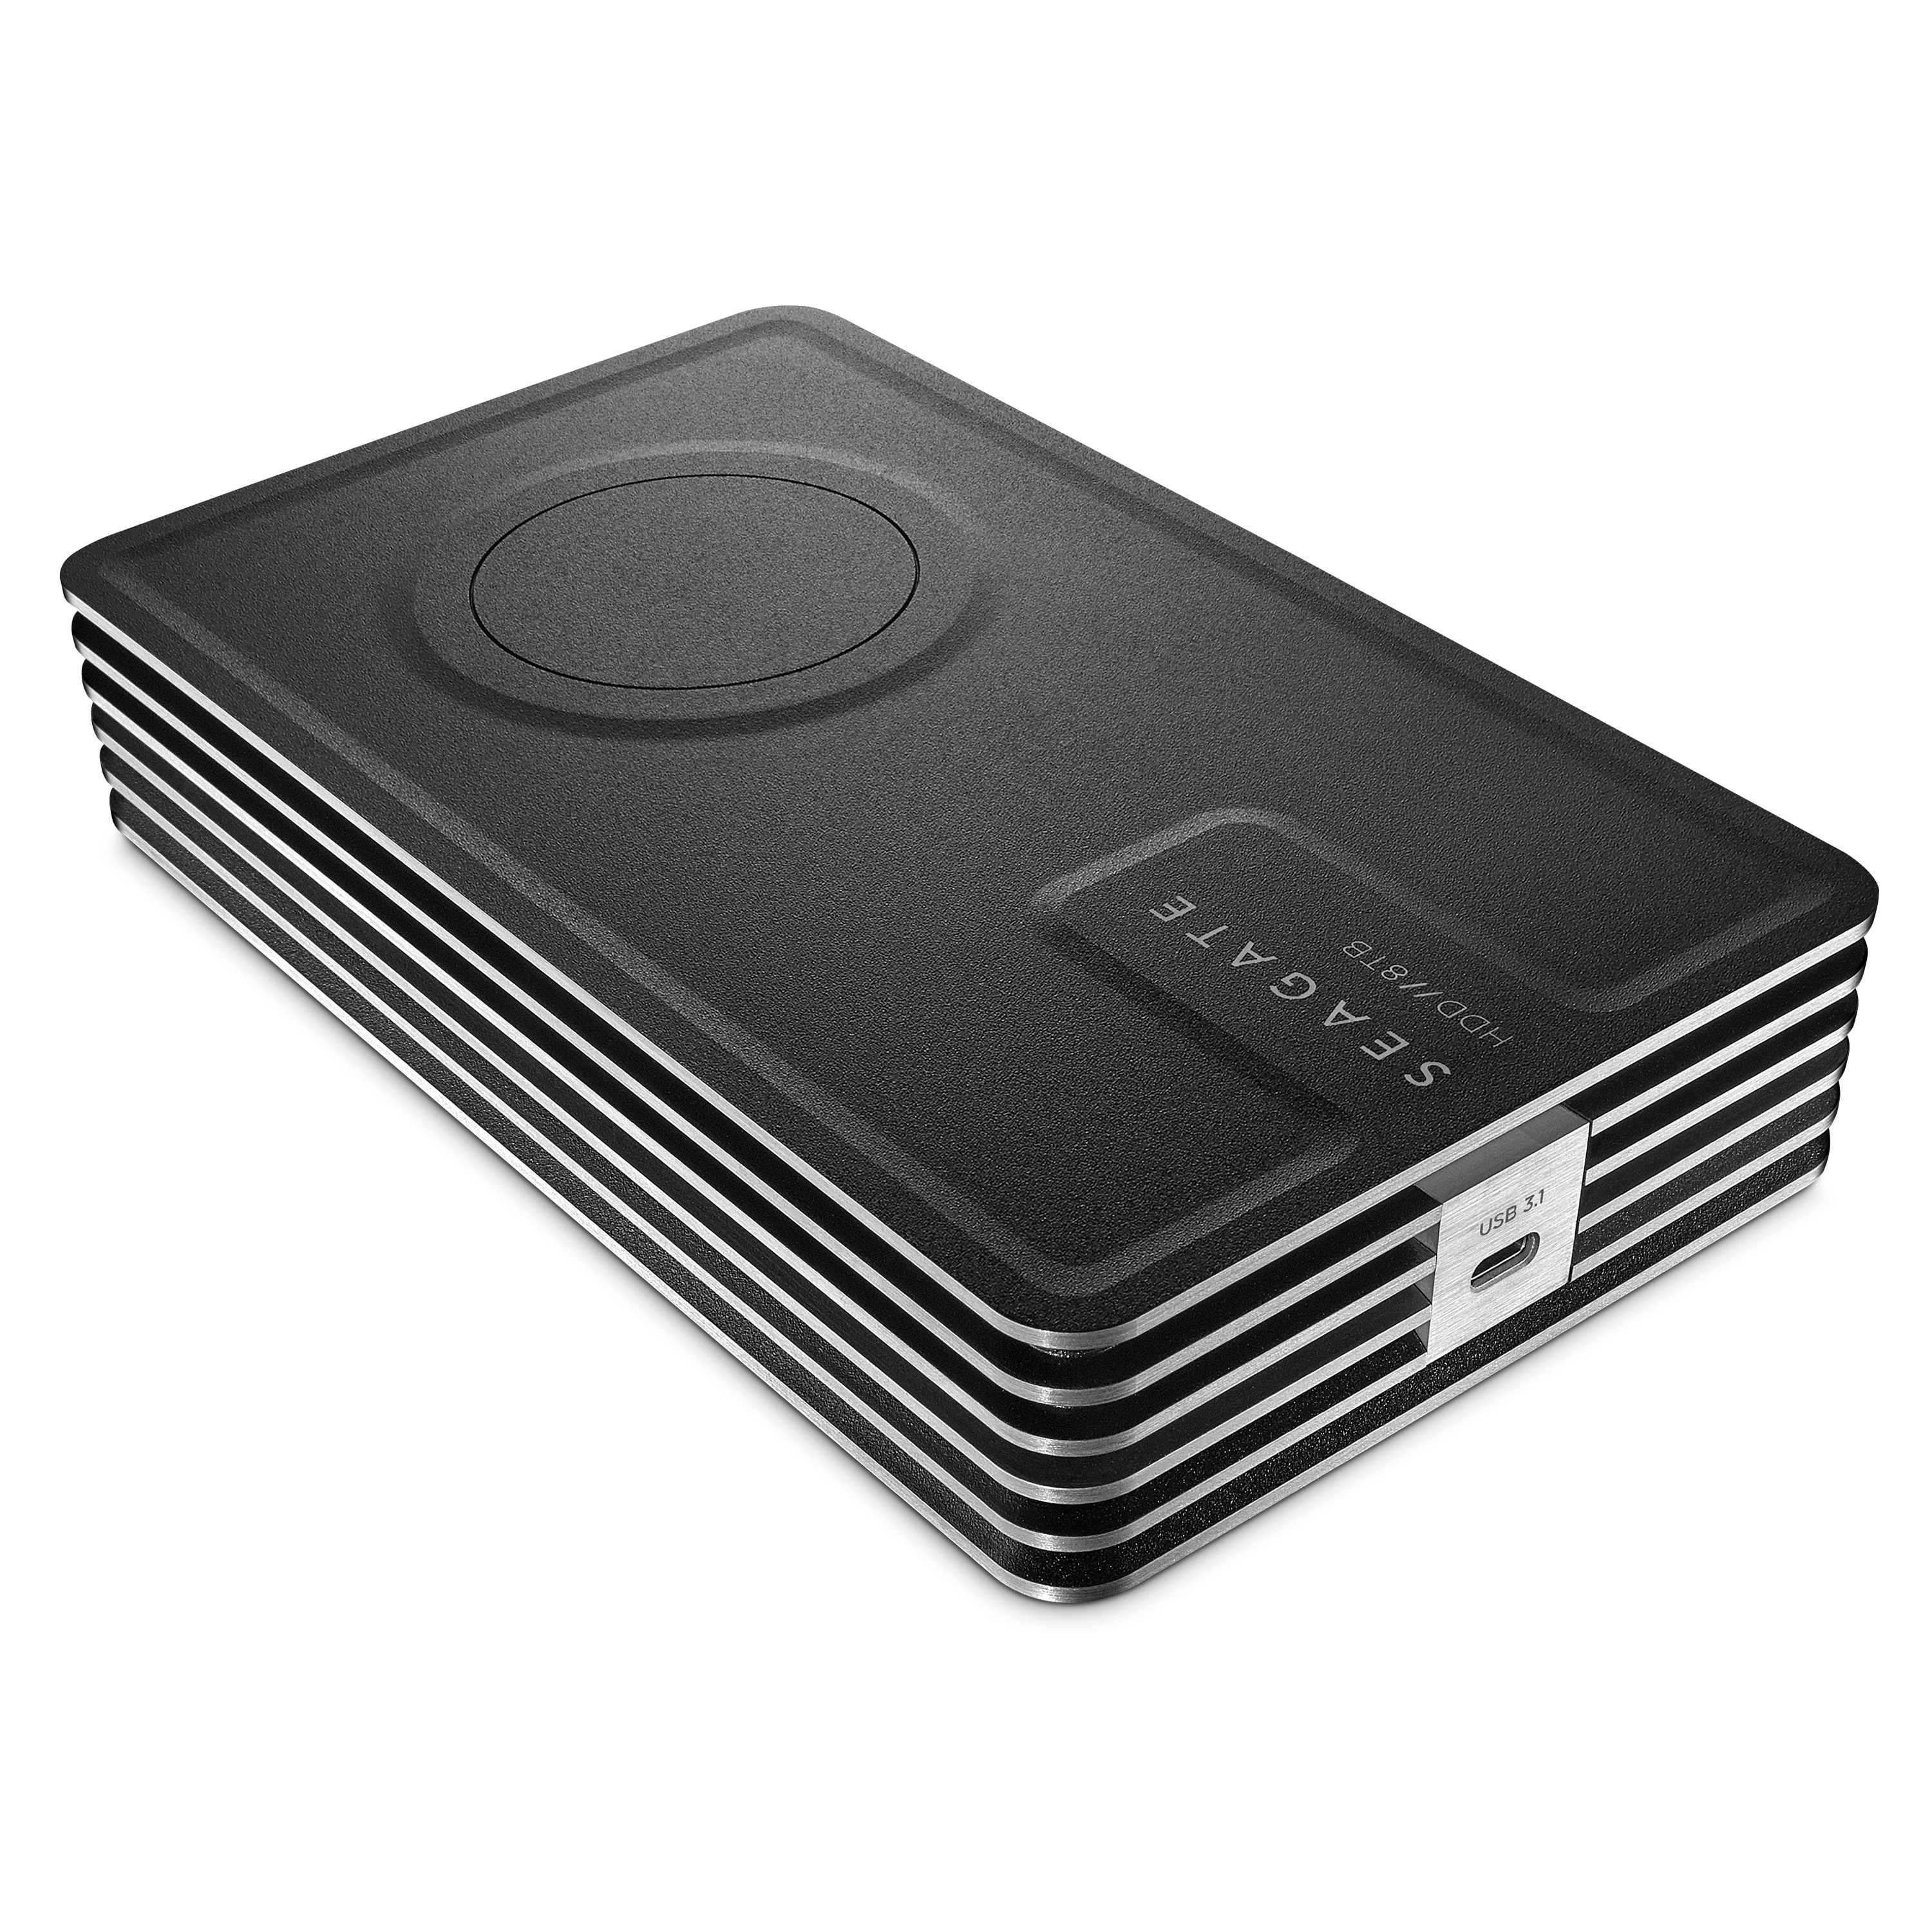 Seagate Launches World's First USB-powered Desktop Hard Drive With Innov8 | News | Seagate US